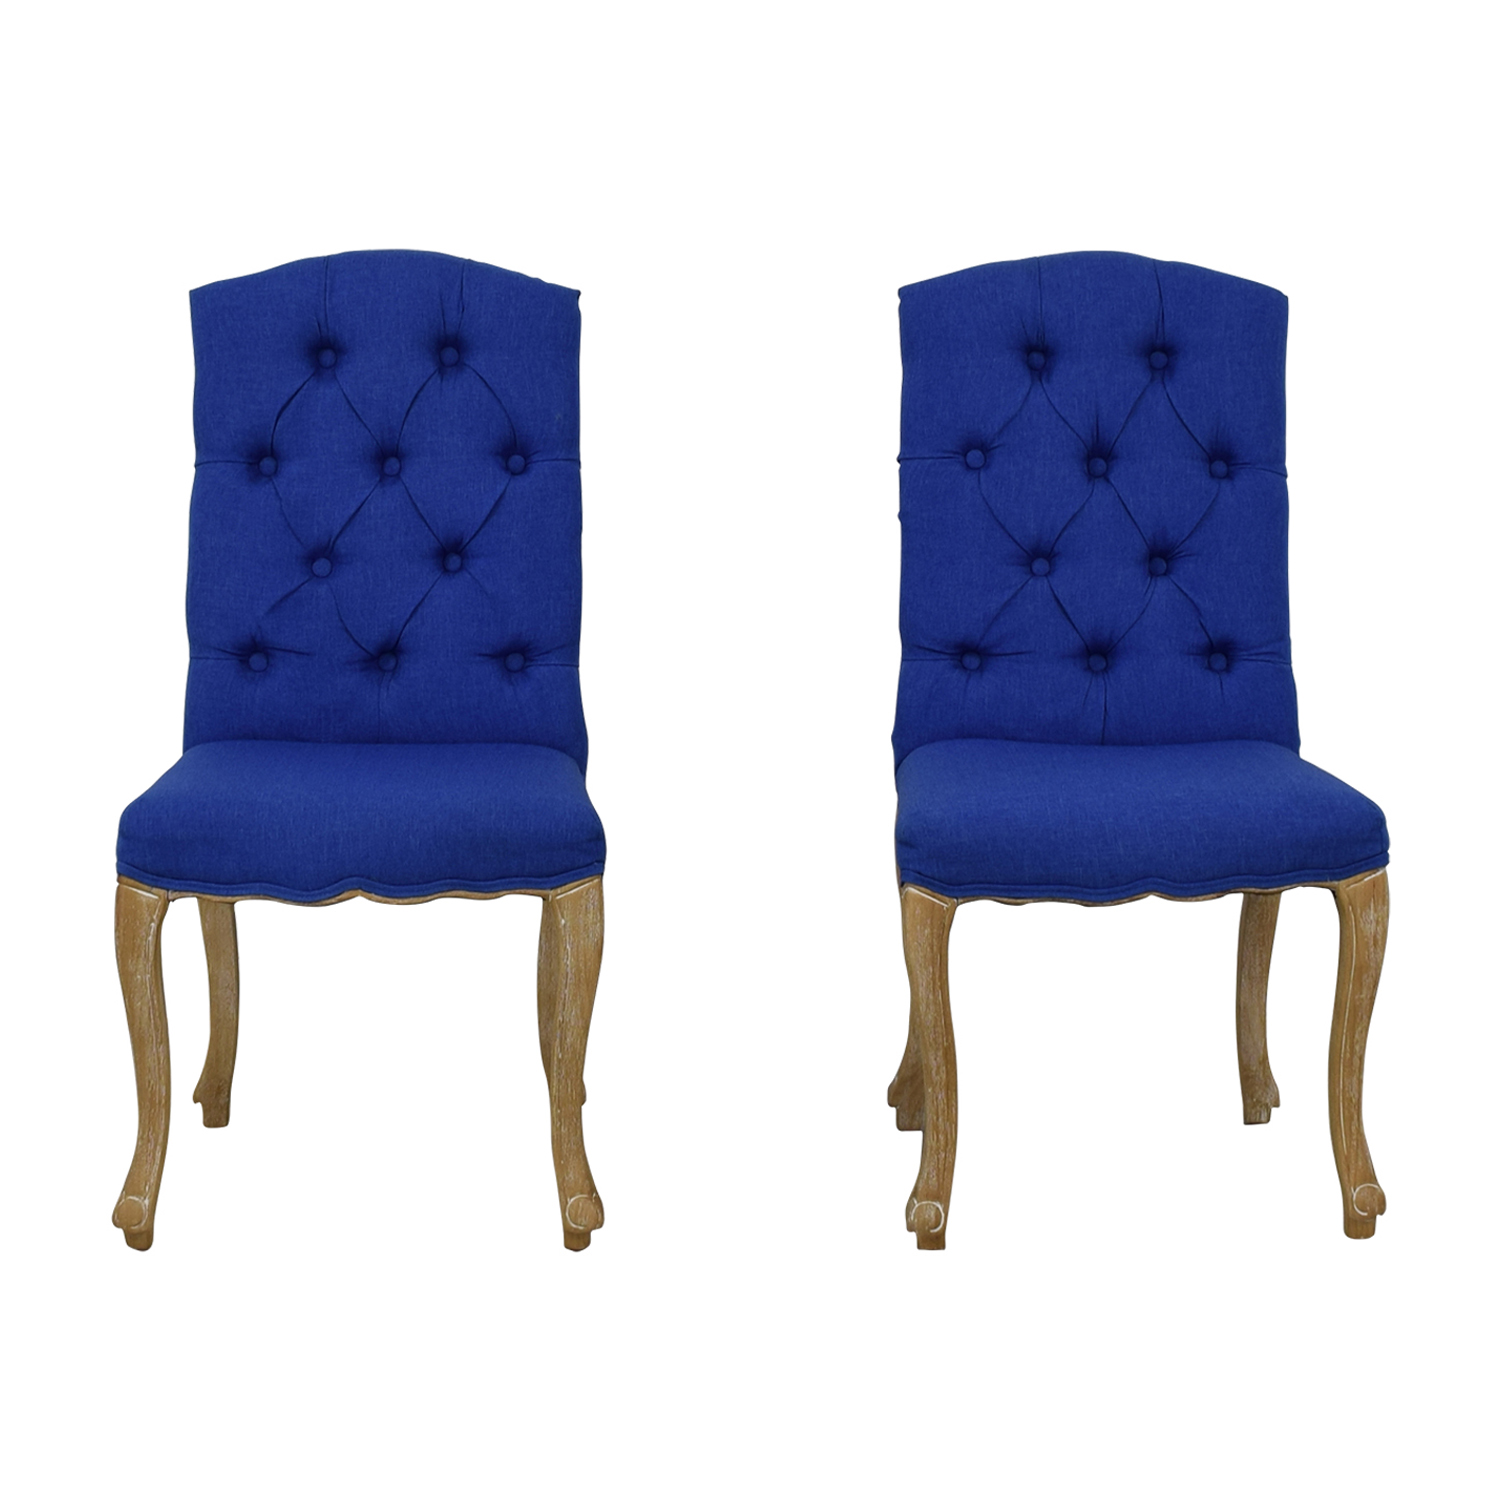 Royal Blue Chair 73 Off Royal Blue Tufted Back Dining Chairs Chairs